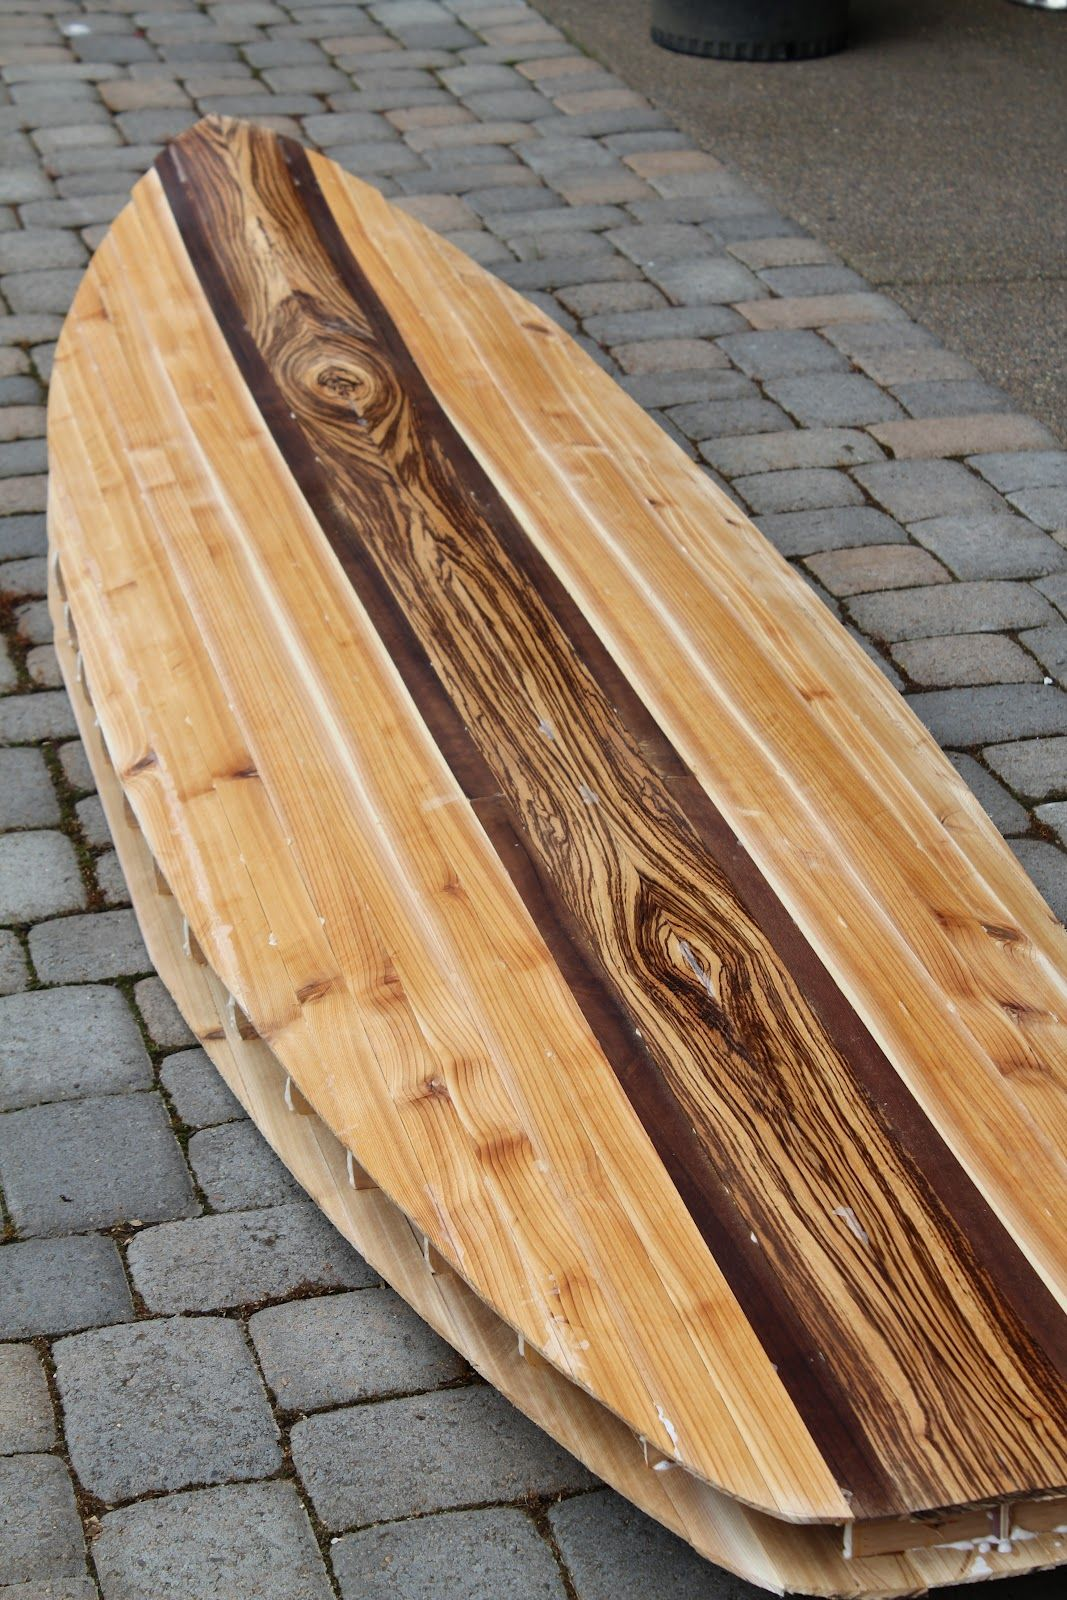 Alley Designs Stand Up Paddle Boards : Wood stand up paddle board plans google search